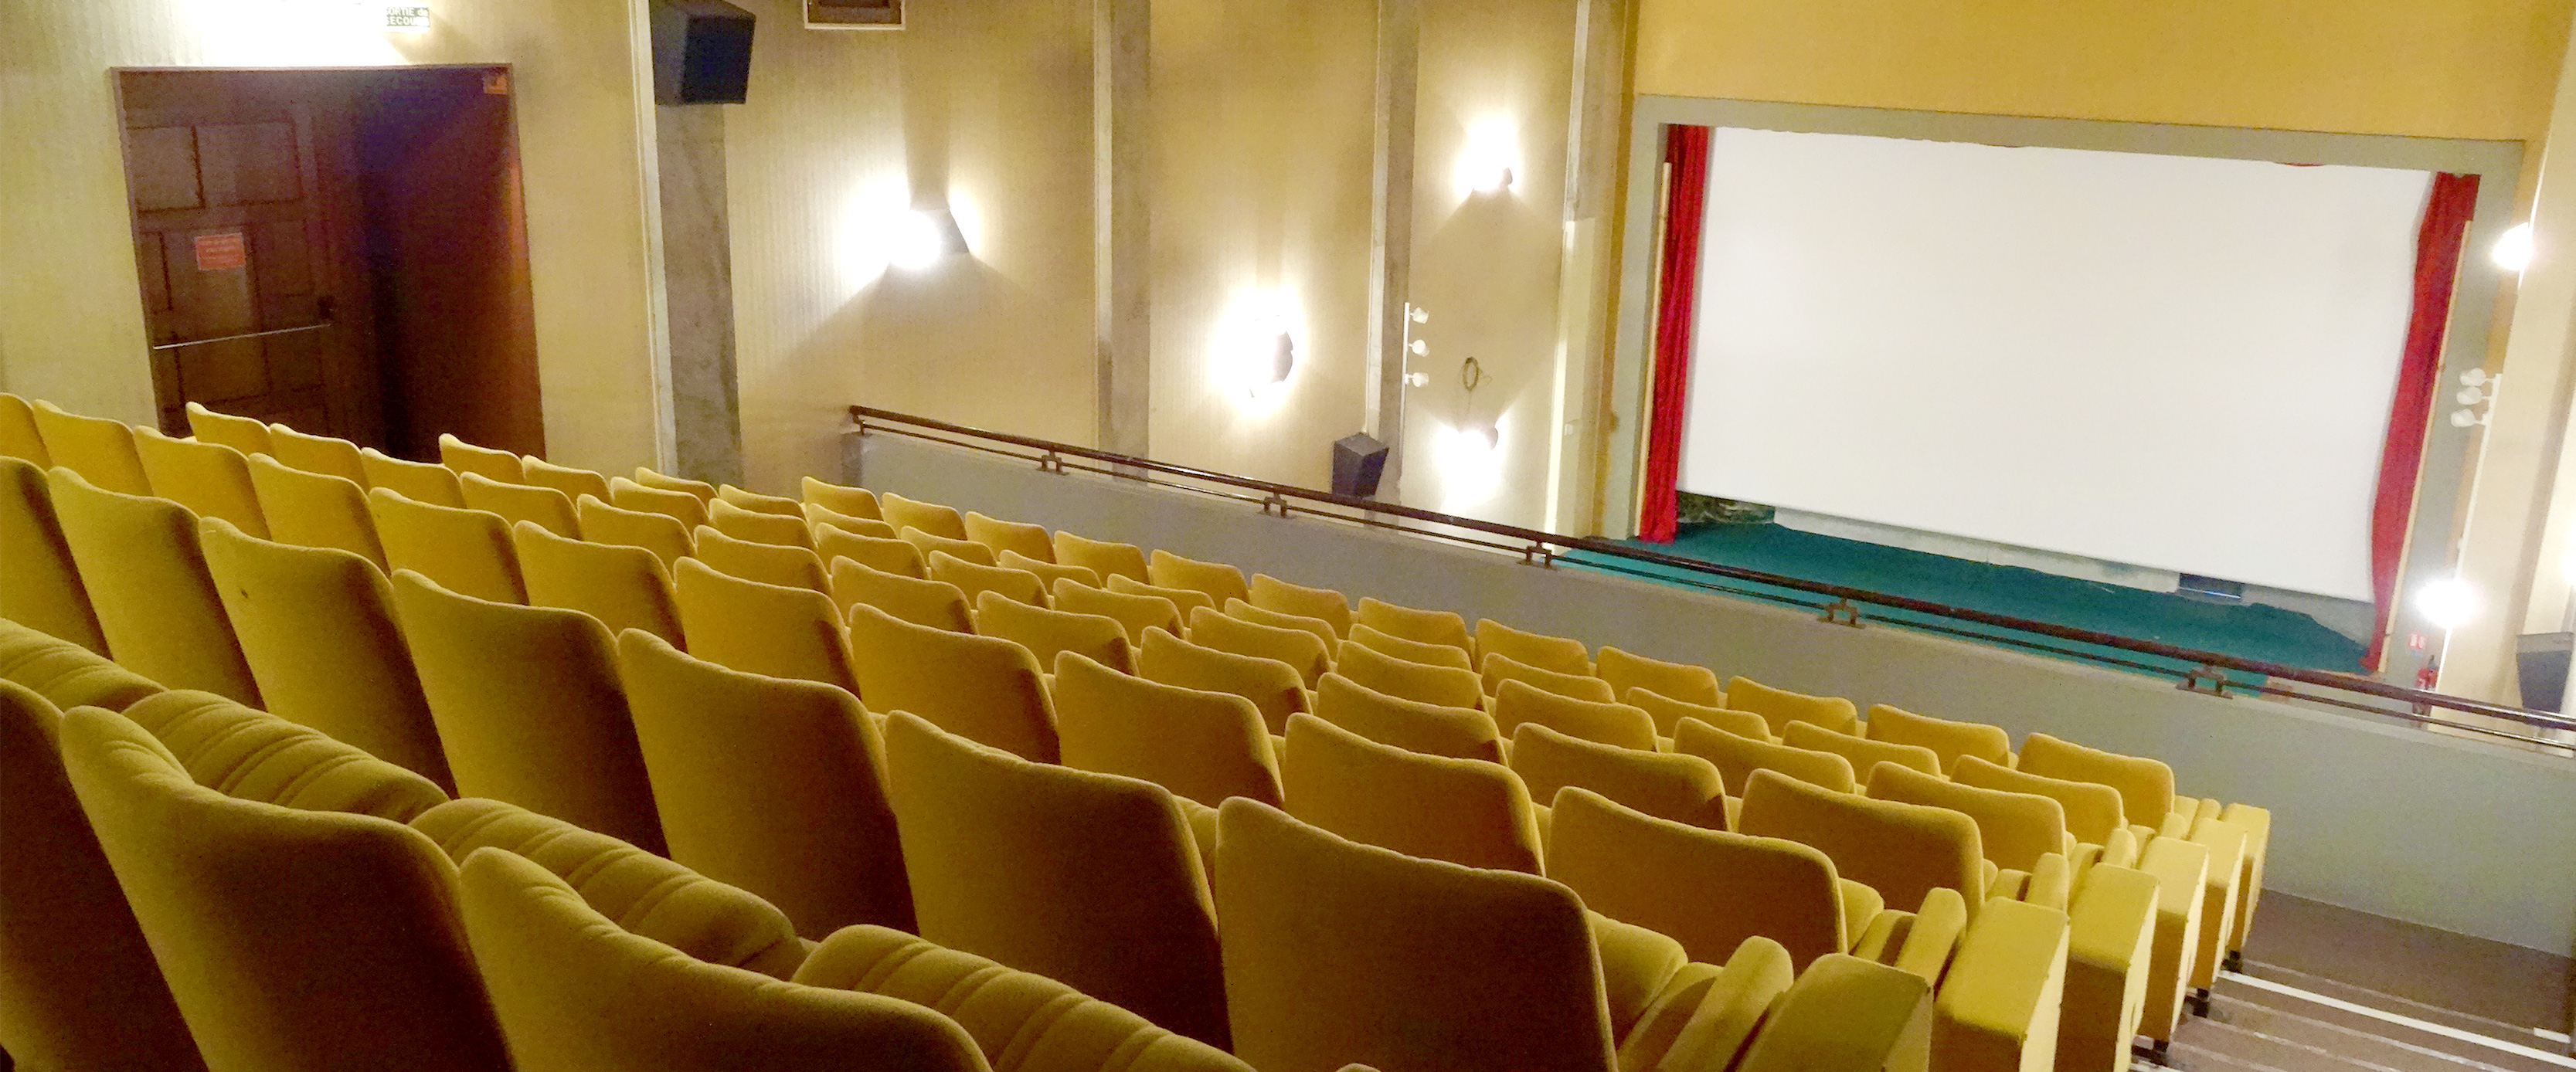 cinema-besse-culture-quotidien.jpg